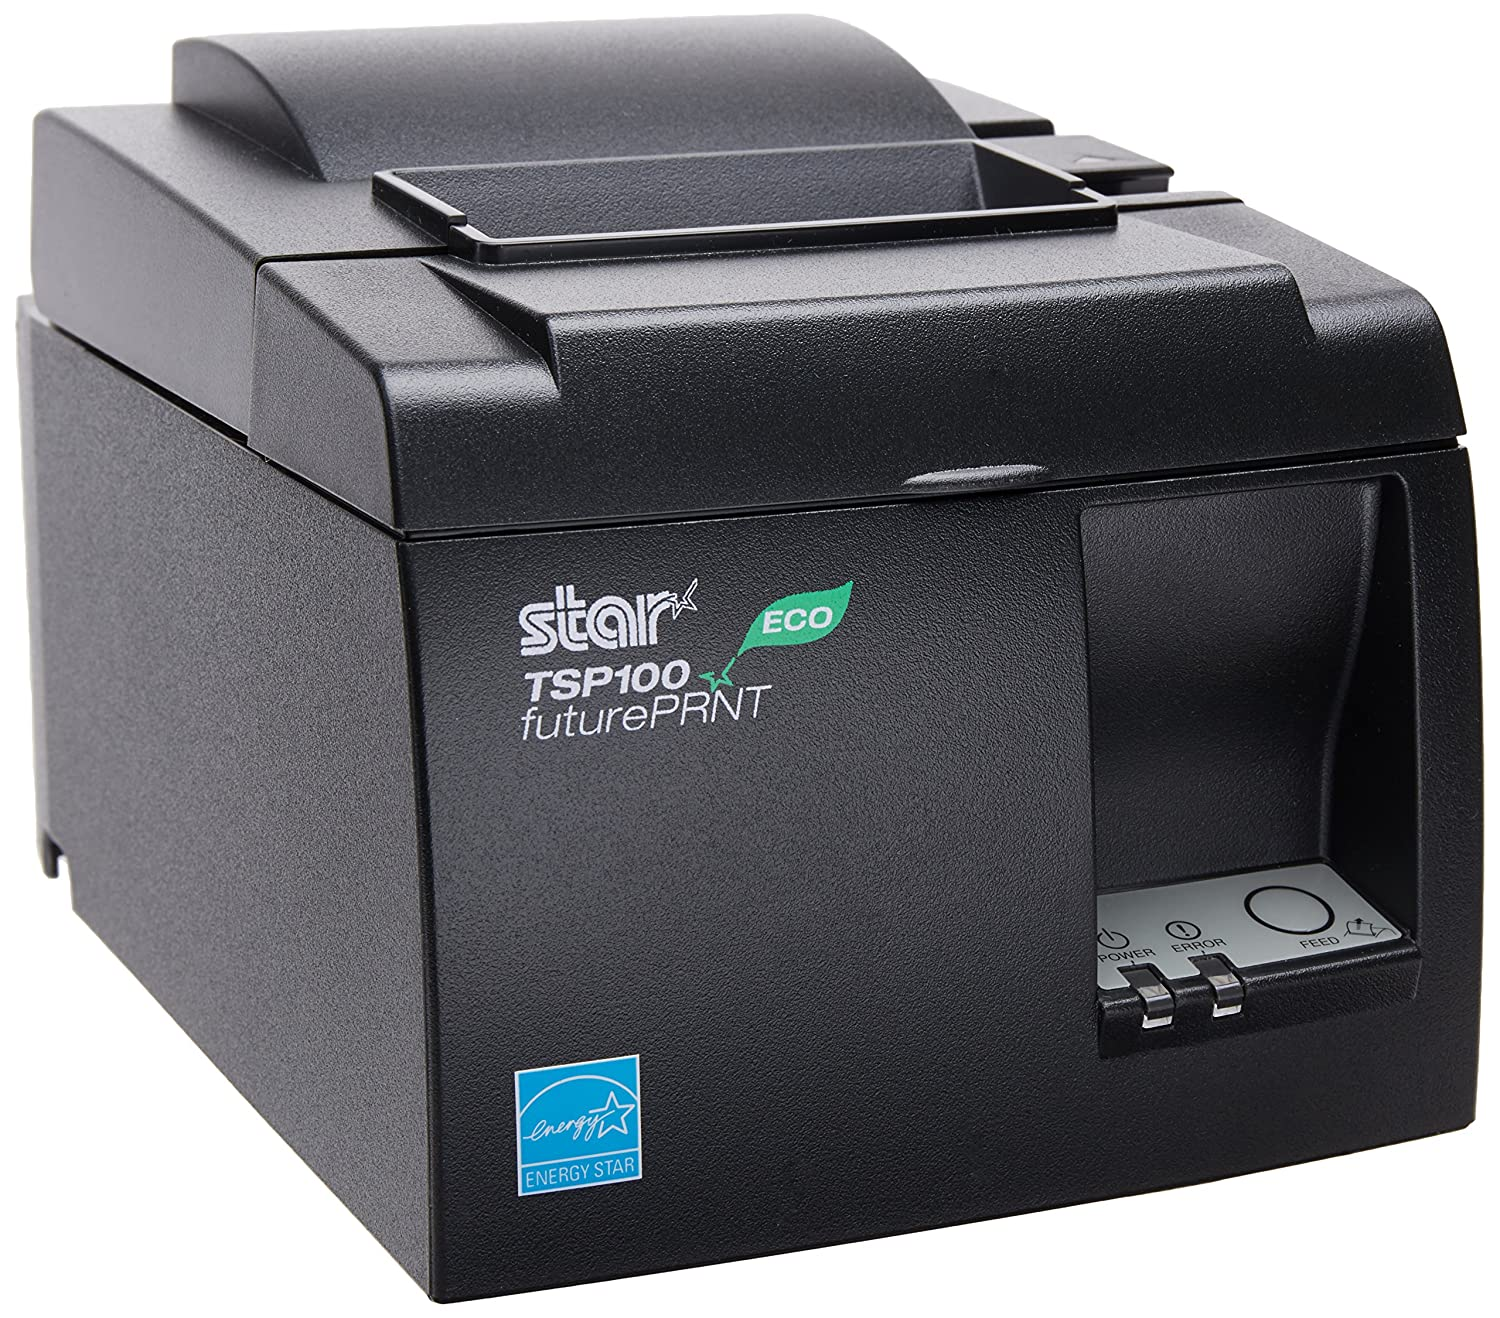 High-speed (43-receipts per minute) thermal receipt printer with 802.11 B/G/N WiFi or Ethernet (LAN) connectivity, and USB conenctor to power the iPad tablet